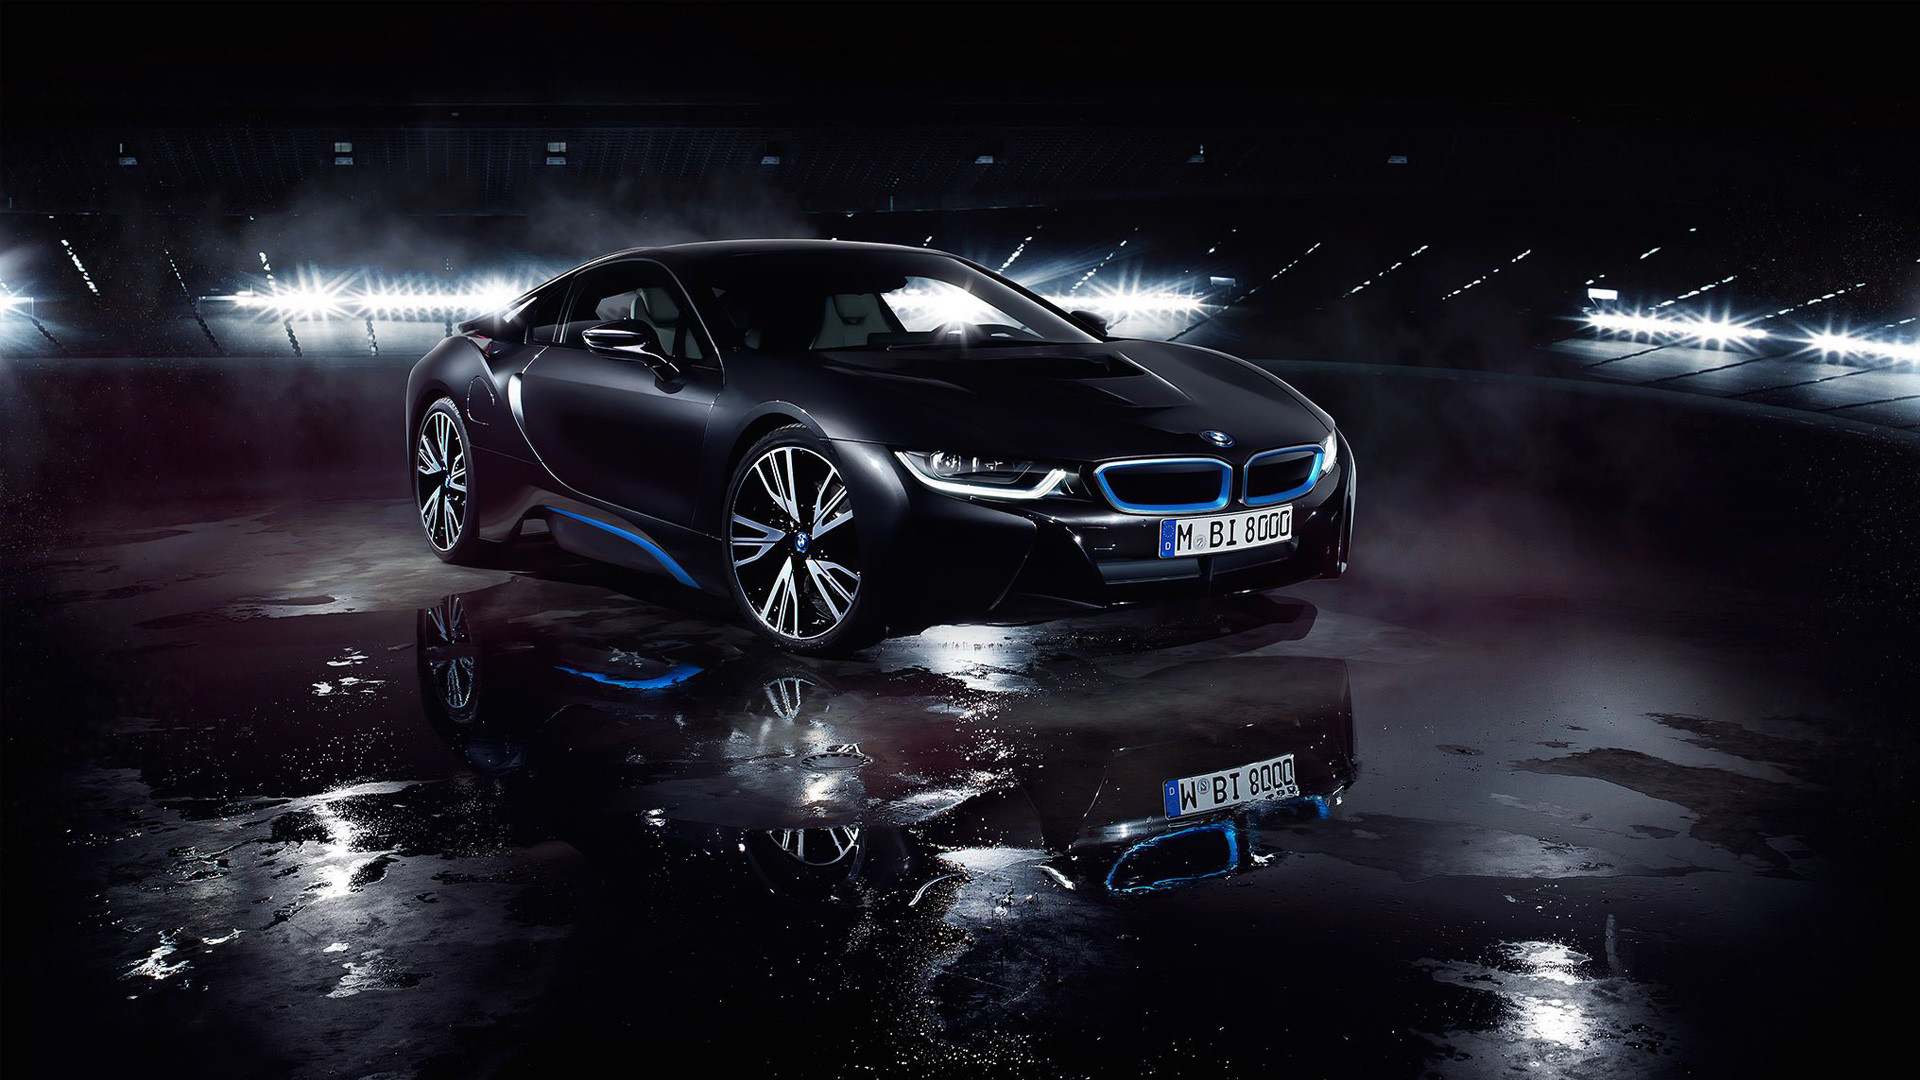 2018 BMW I8 Wallpapers (67+ Images